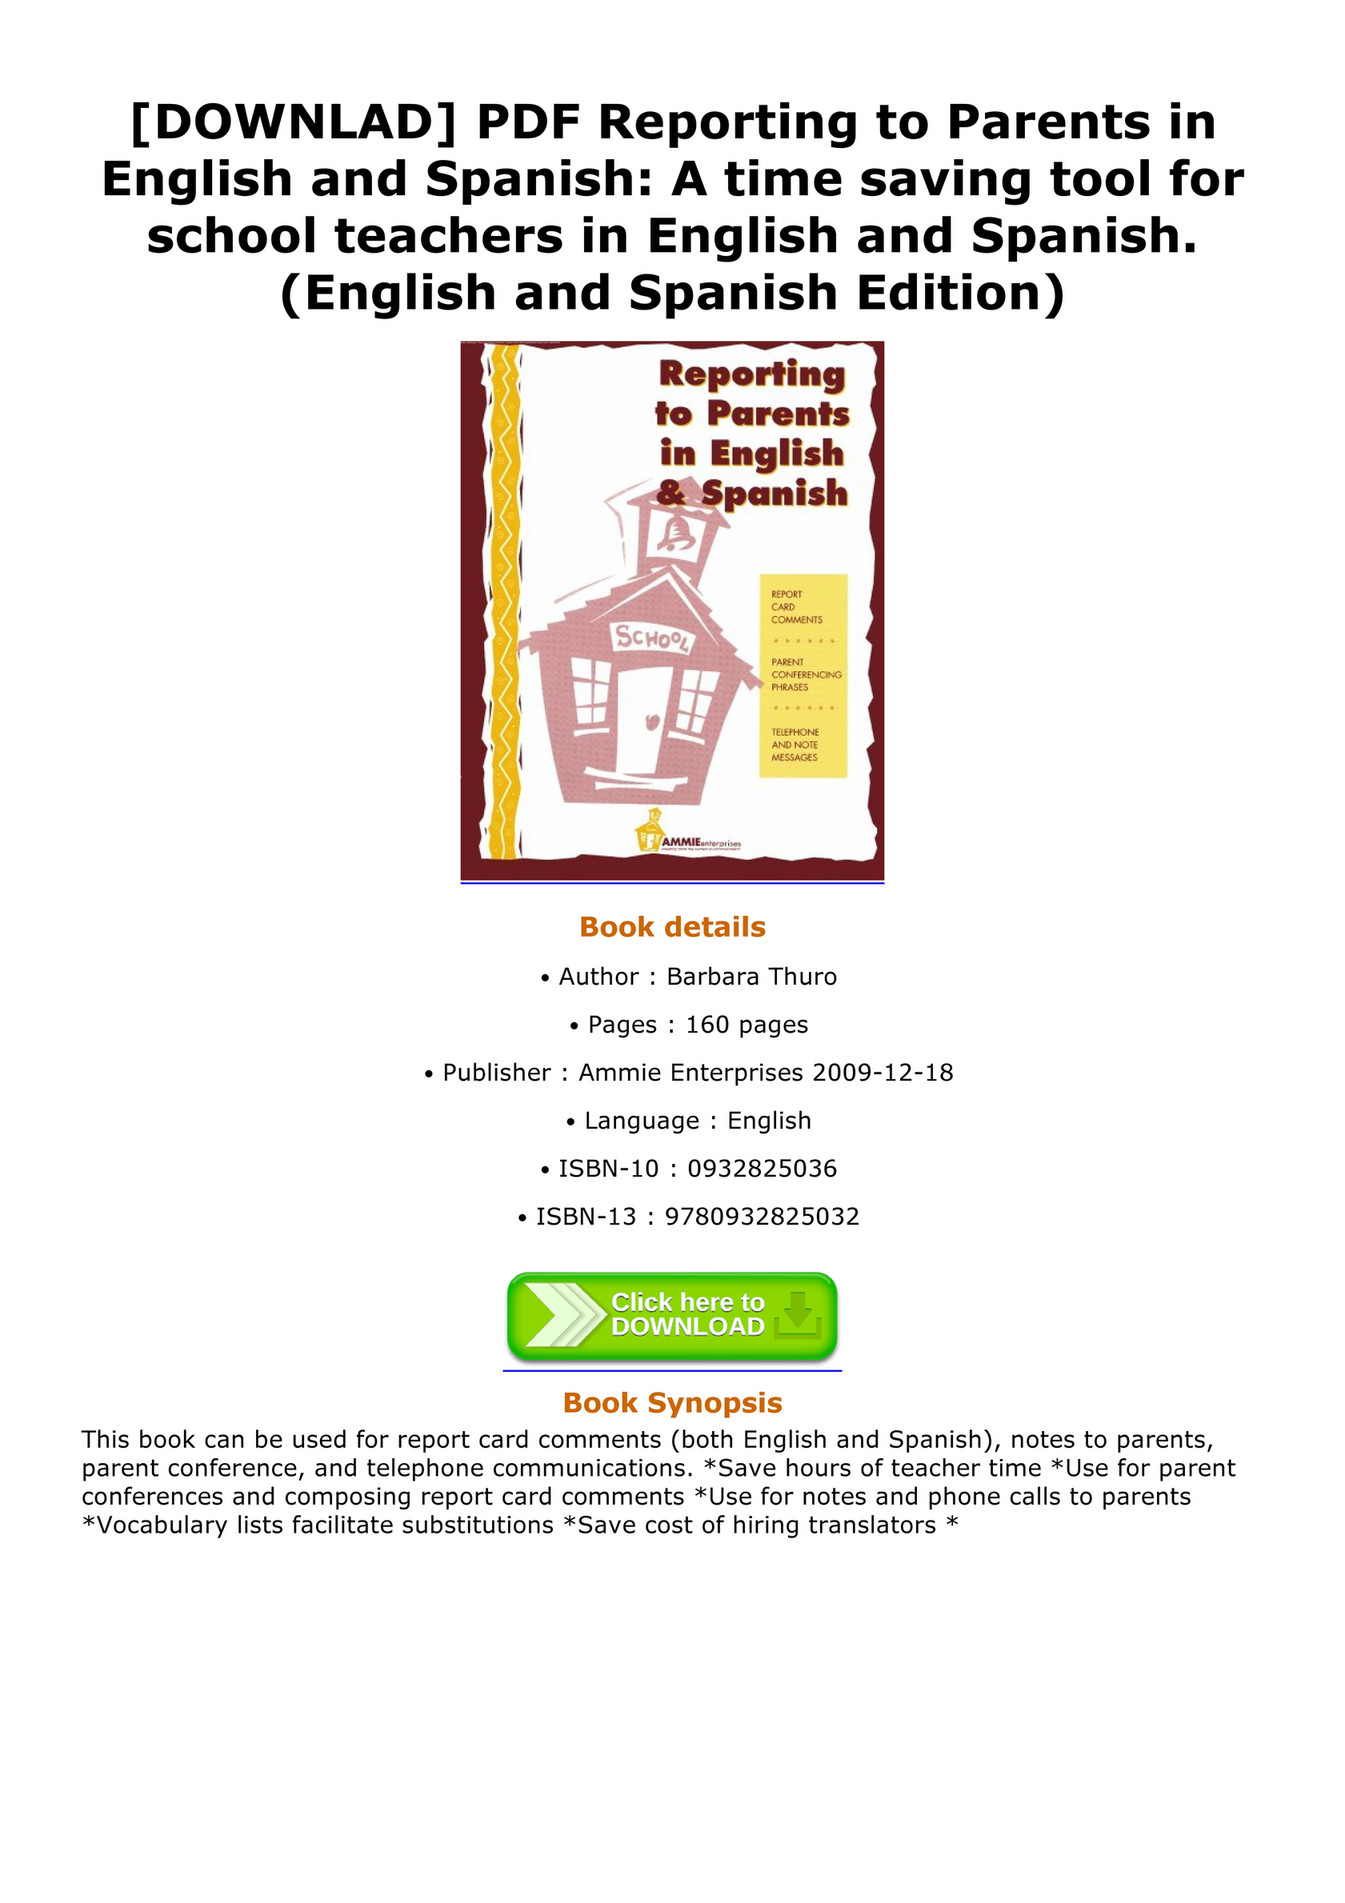 Claussen - DOWNLAD PDF Reporting to Parents in English and